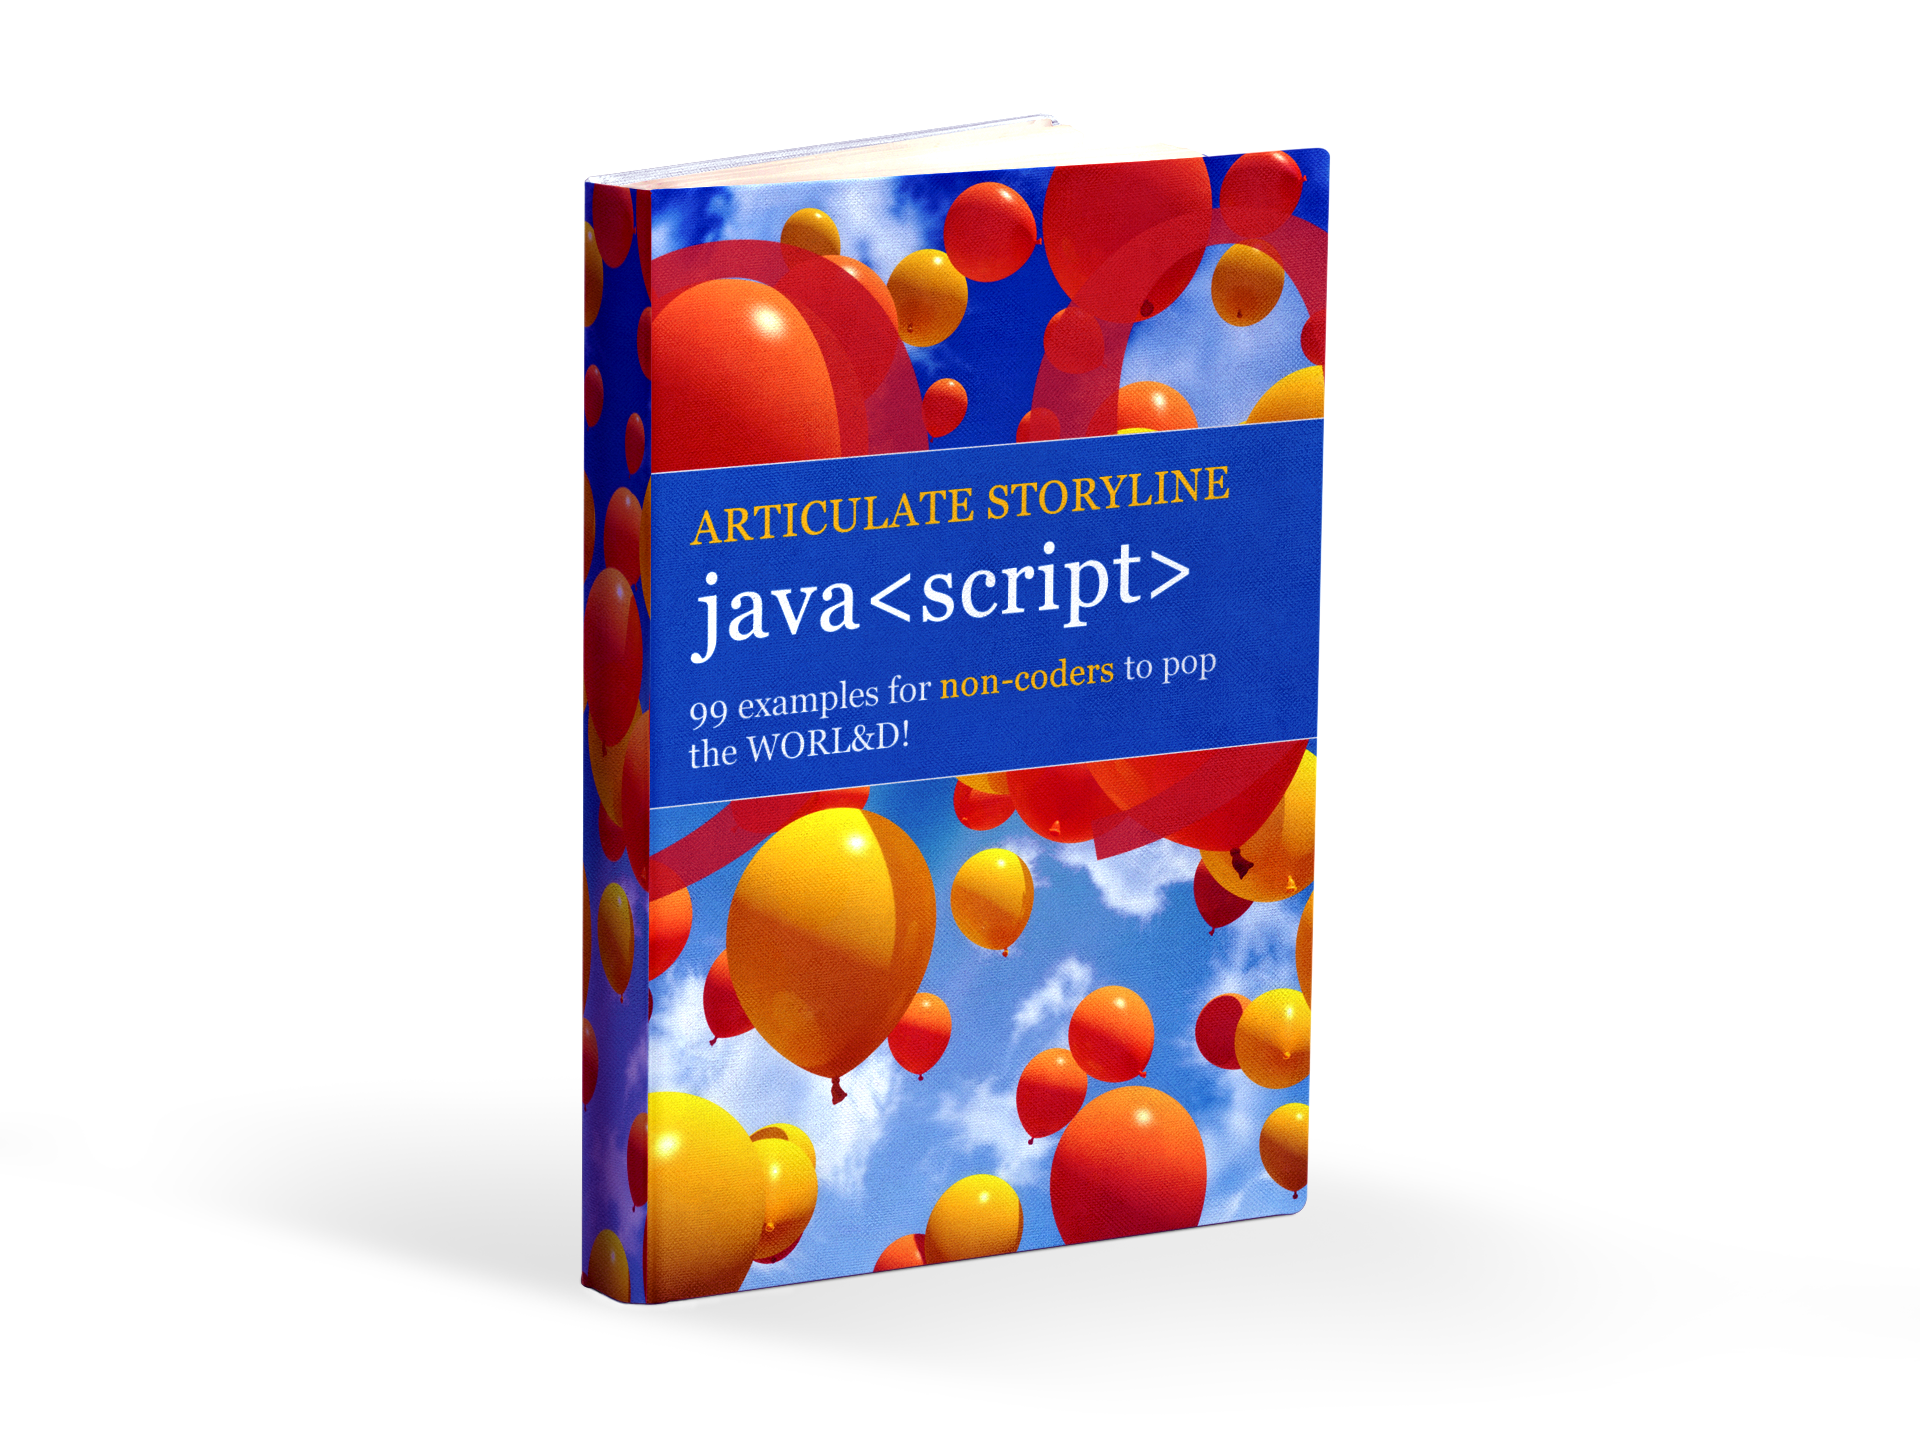 99 Practical Examples to Use JavaScript with Storyline